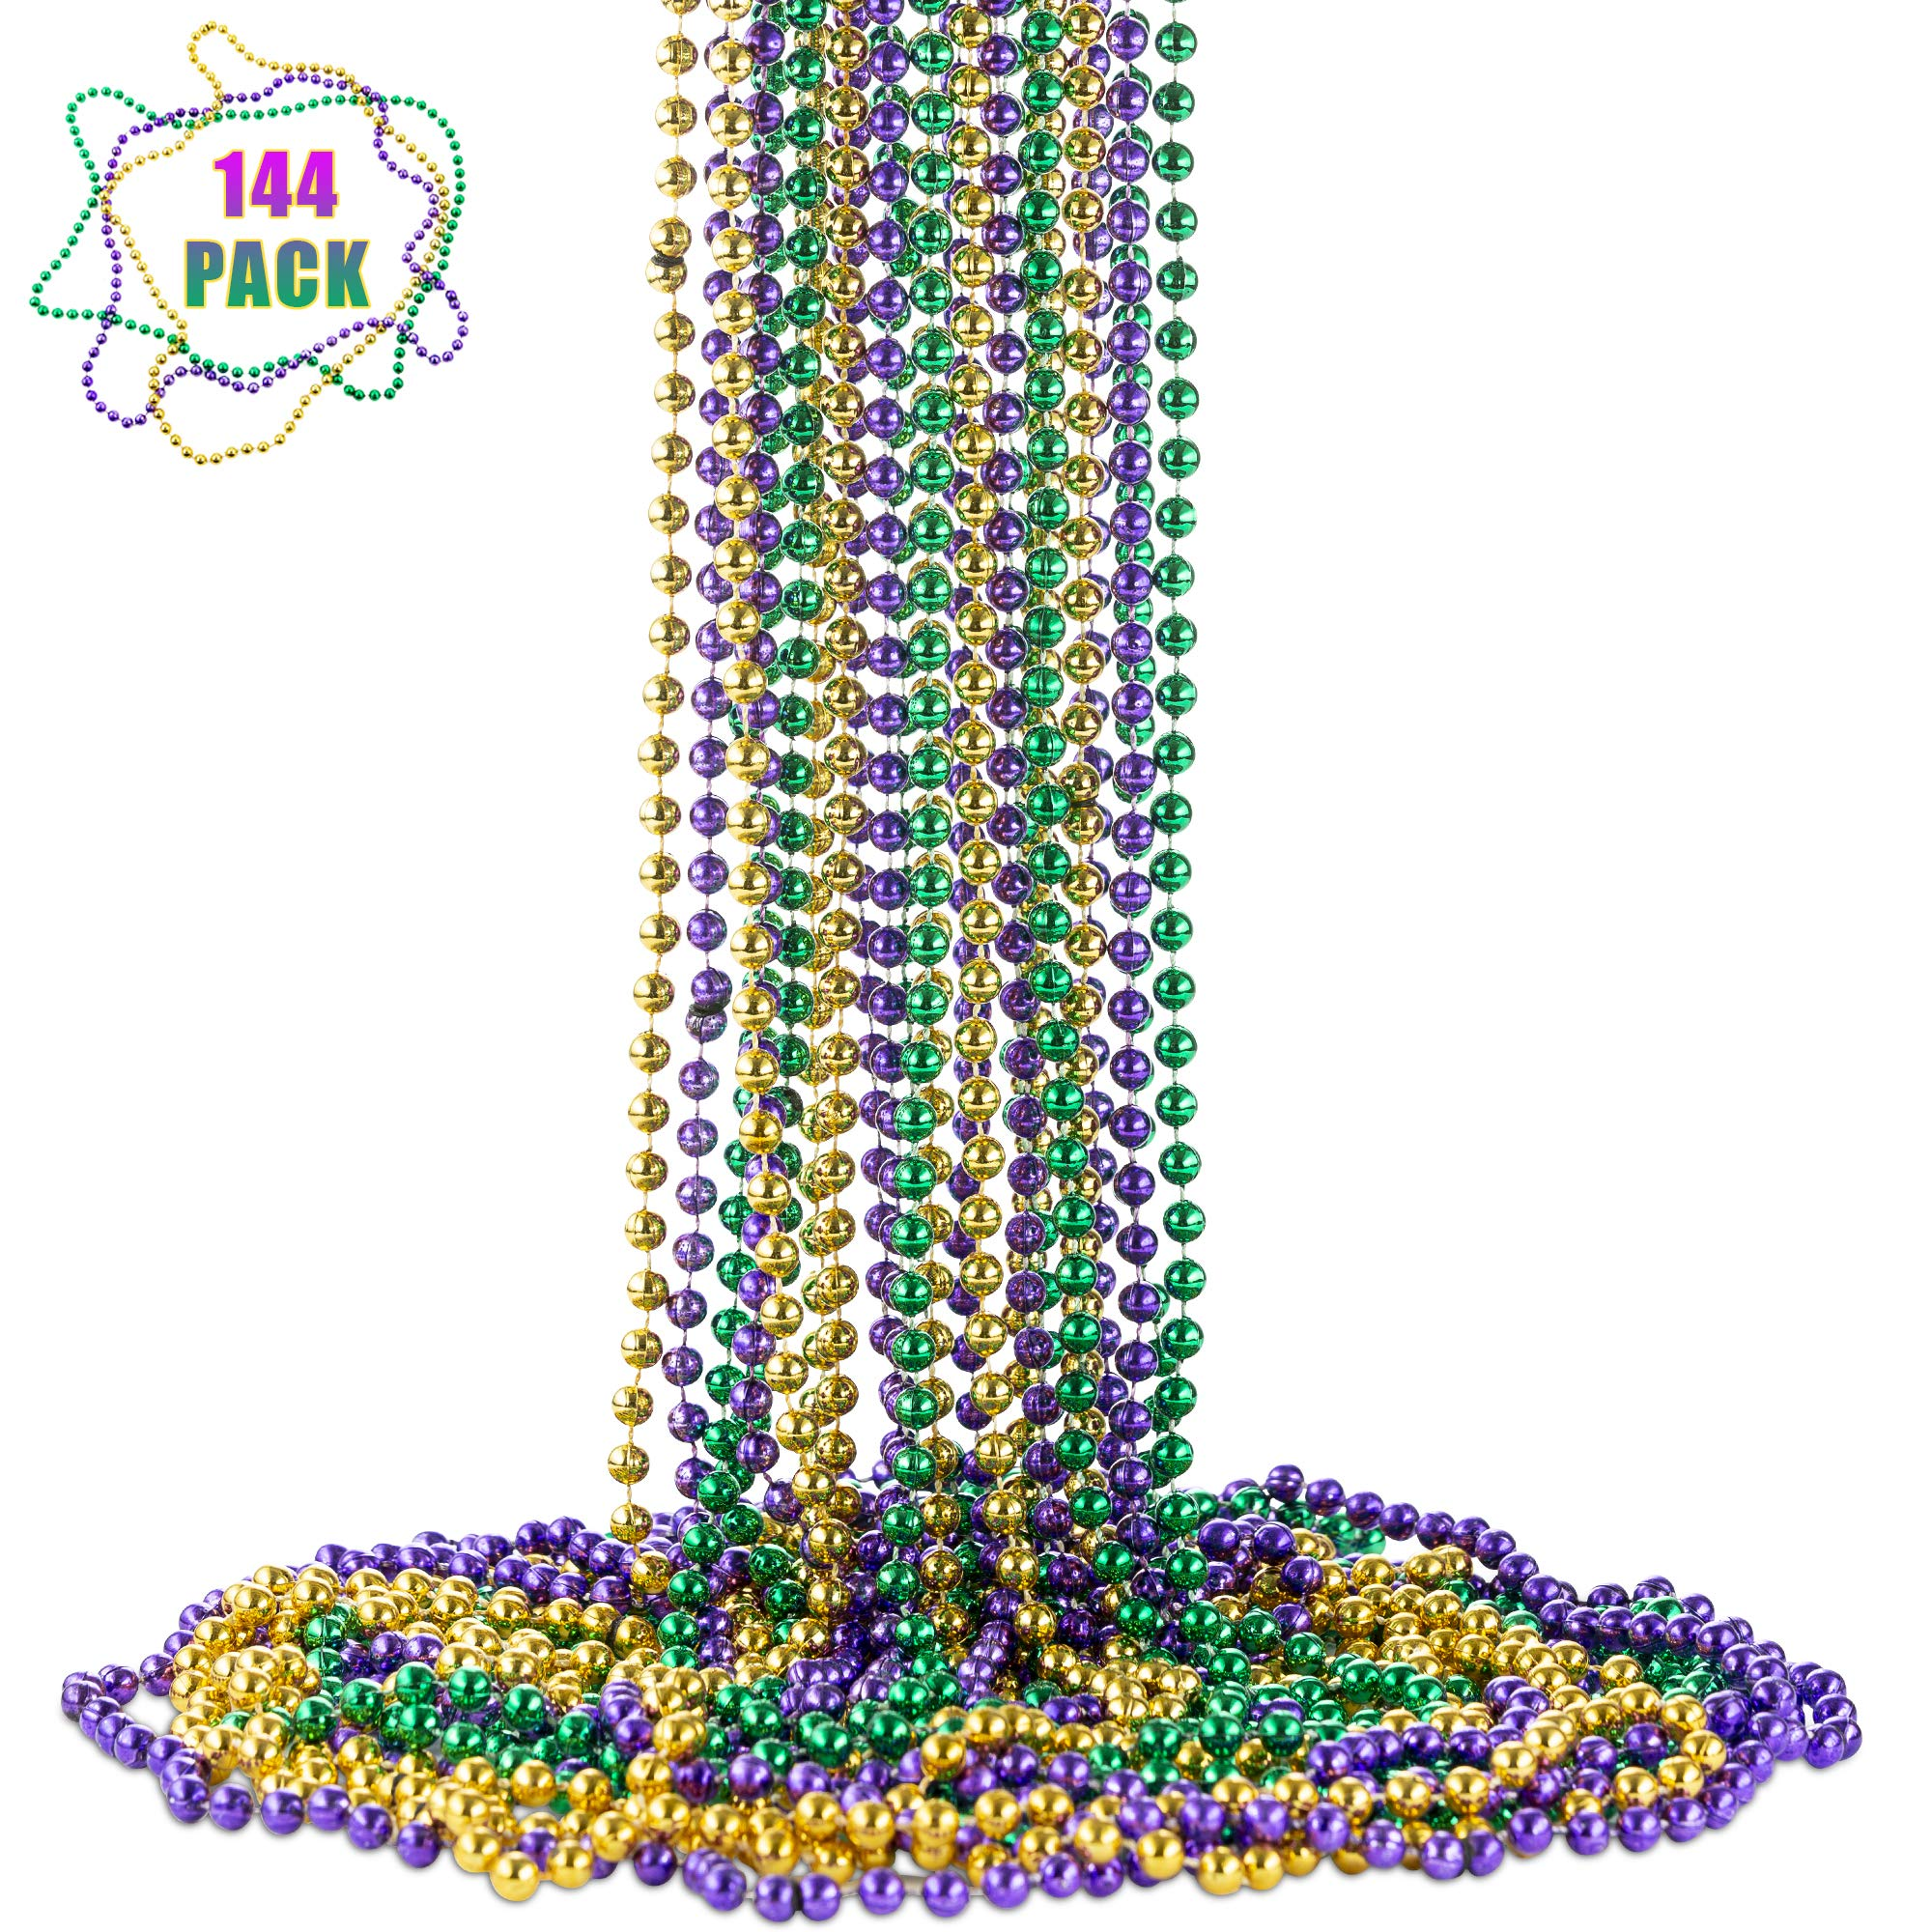 FAVONIR Mardi Gras Assorted Beaded Necklace 144 Pack of Metallic Round Multi Colors Costume Necklace Accessory 33 Inch 7 mm- for Events and Party Favor Novelty